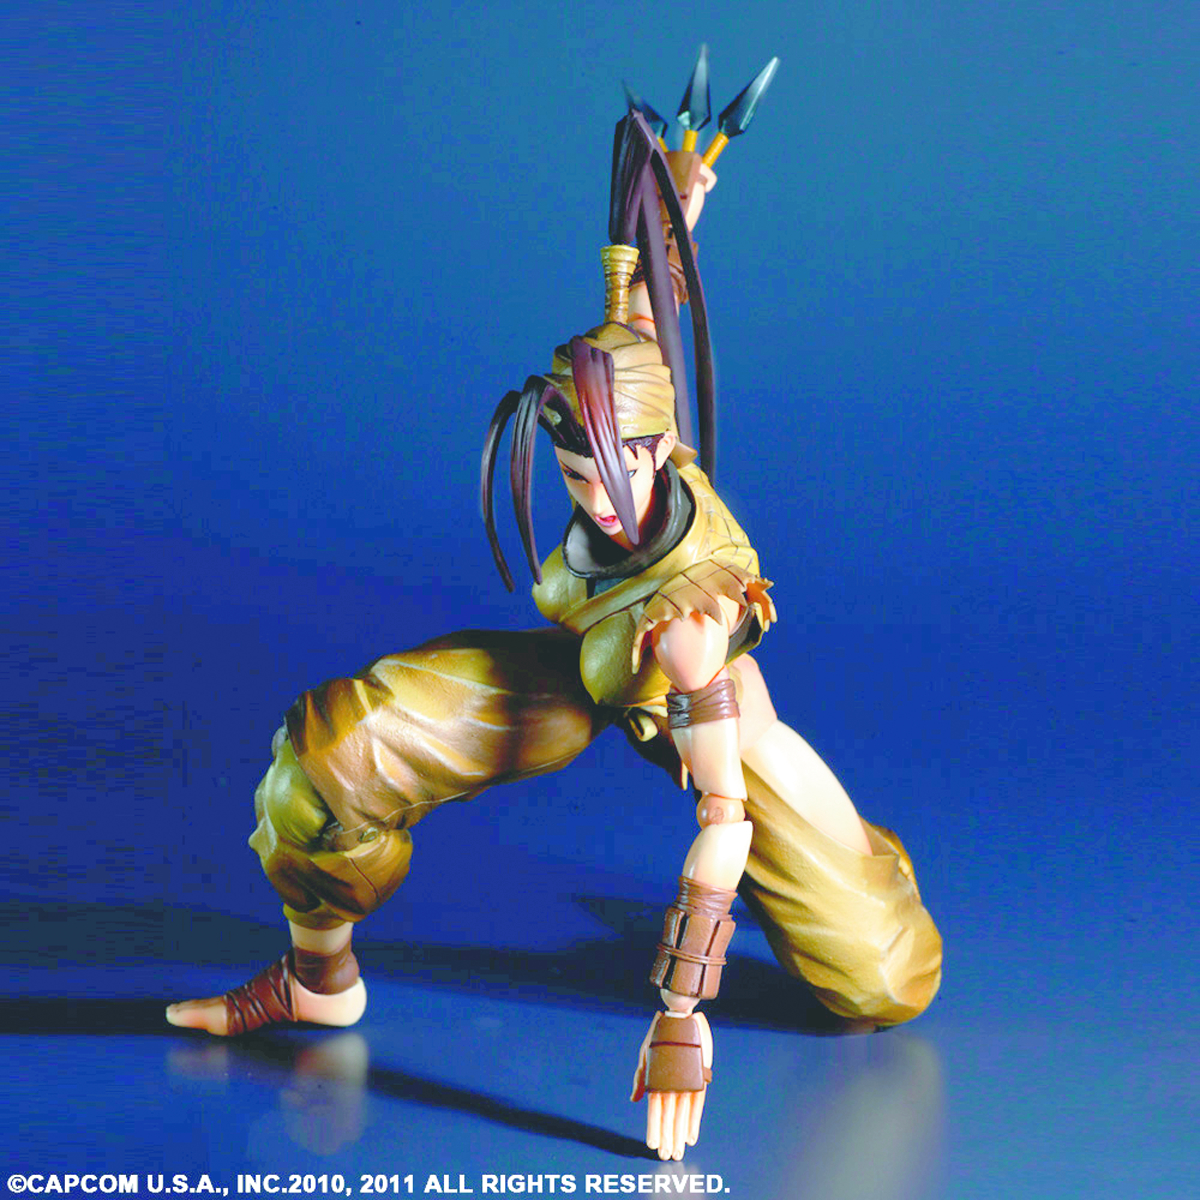 SUPER STREET FIGHTER IV PLAY ARTS KAI IBUKI AF